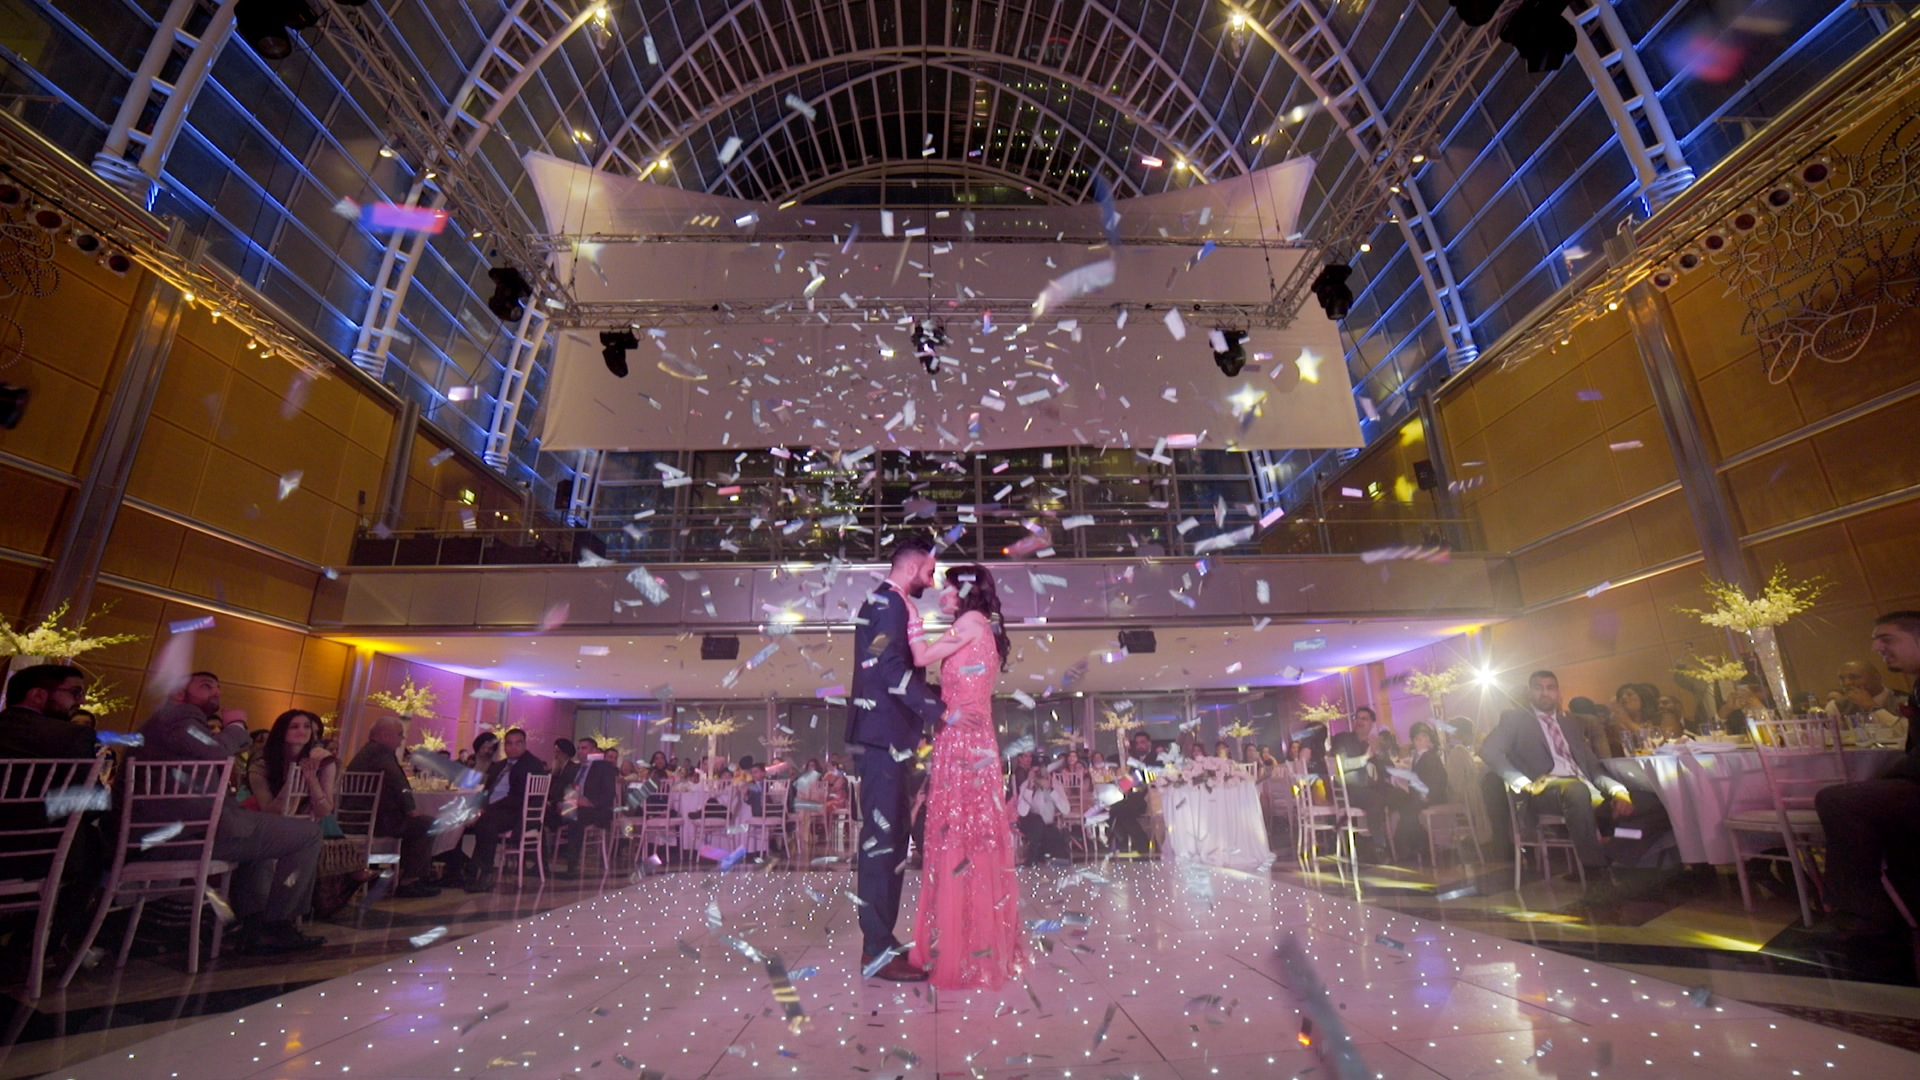 shakini pro photography archives the wedding filmmakers the